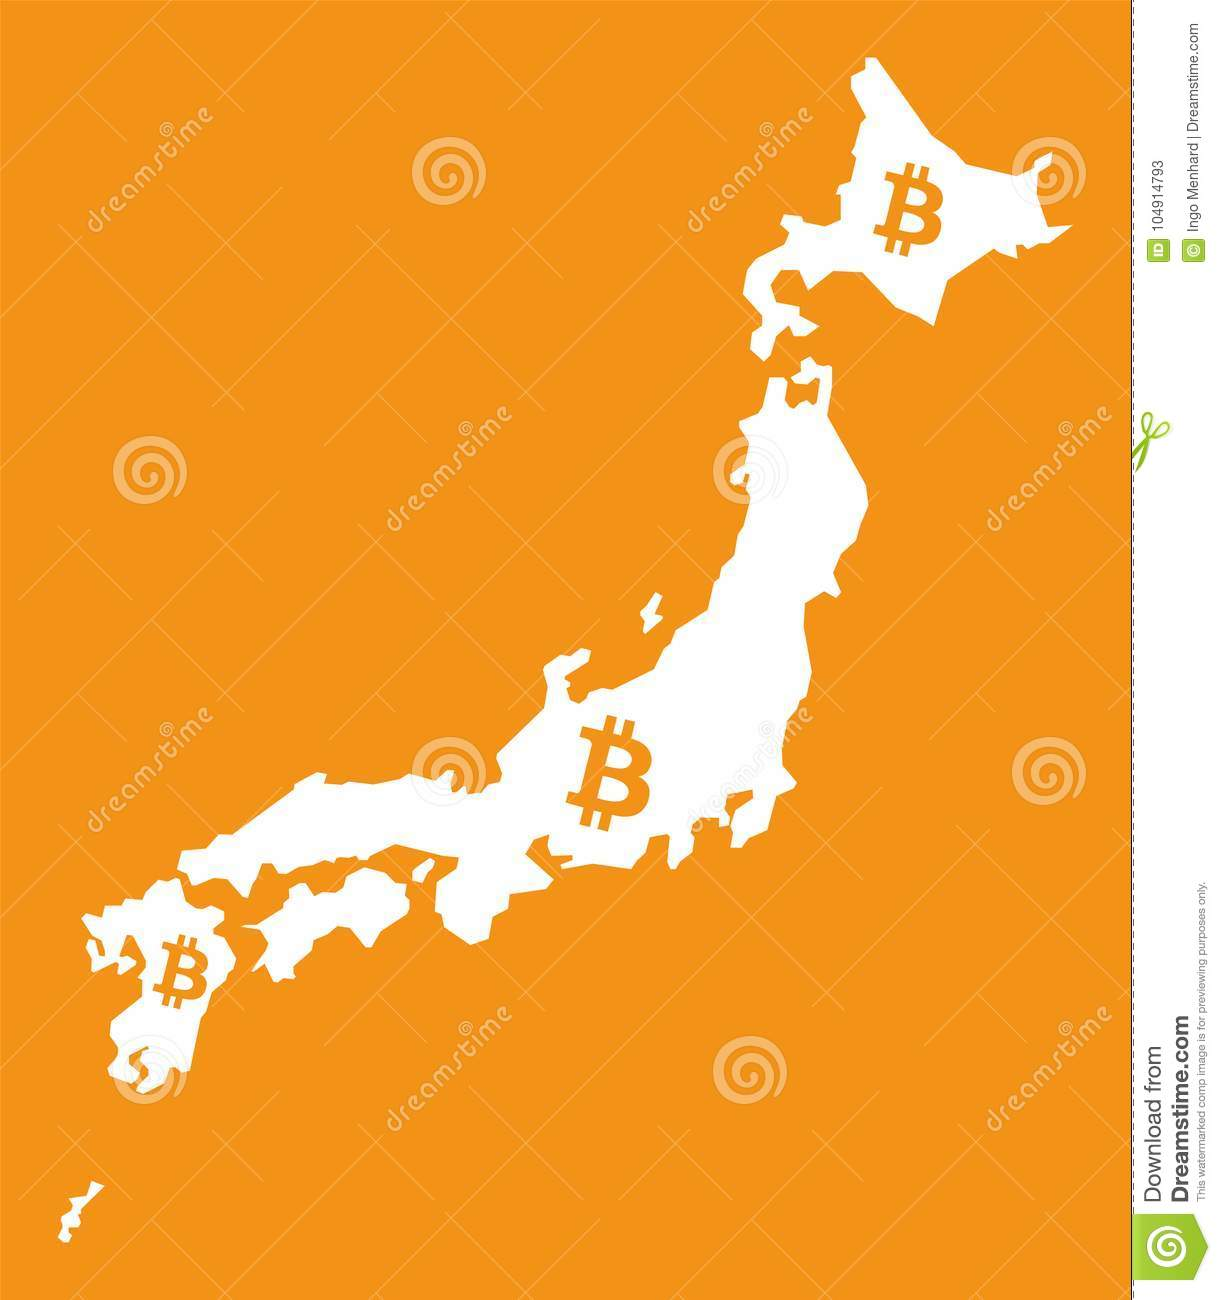 Japan Map With Bitcoin Crypto Currency Symbol Illustration Stock